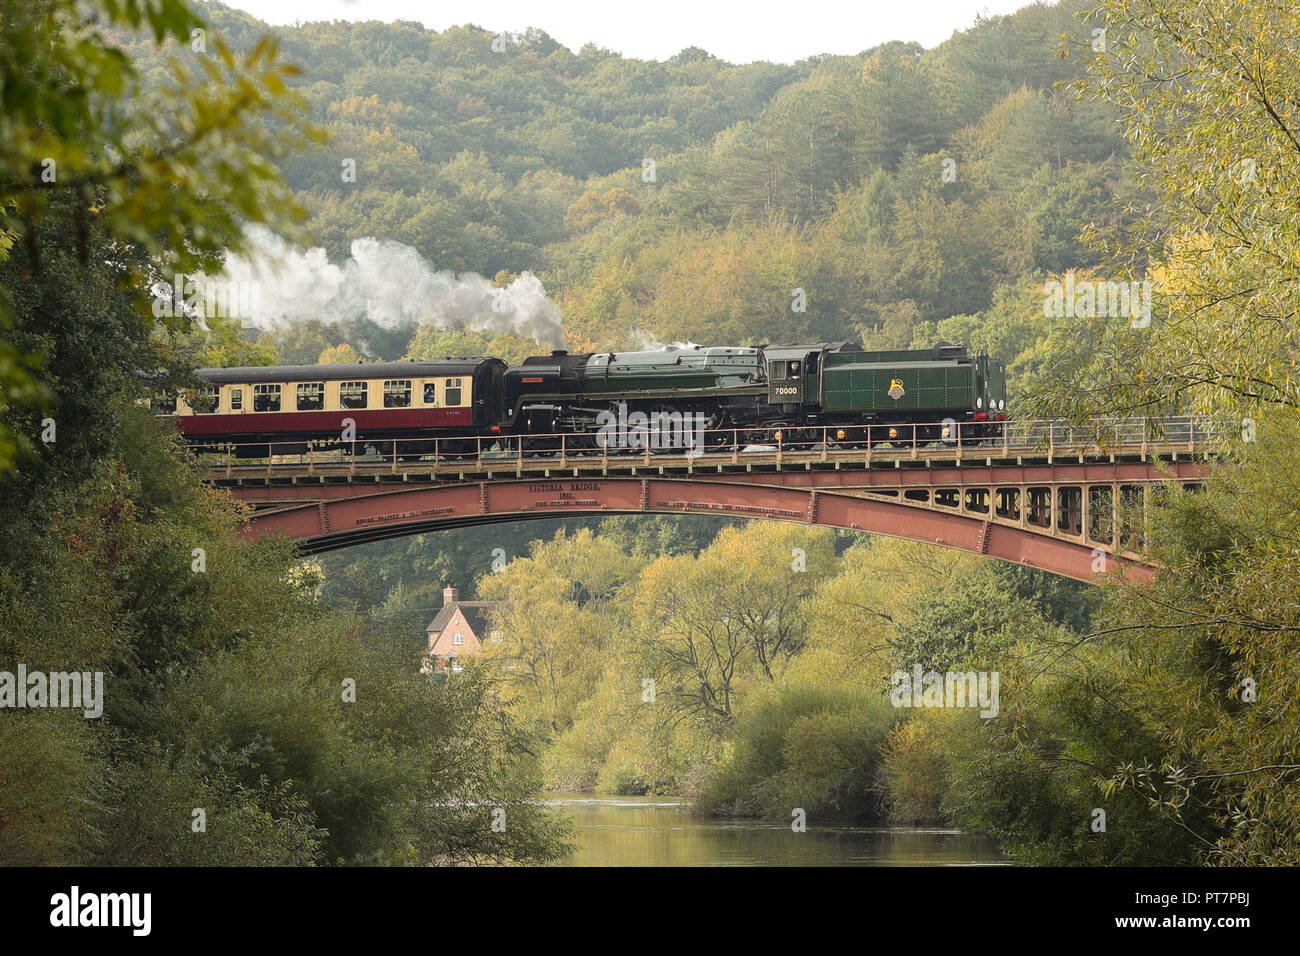 A BR Standard Class 7 70000 Britannia steam train travels